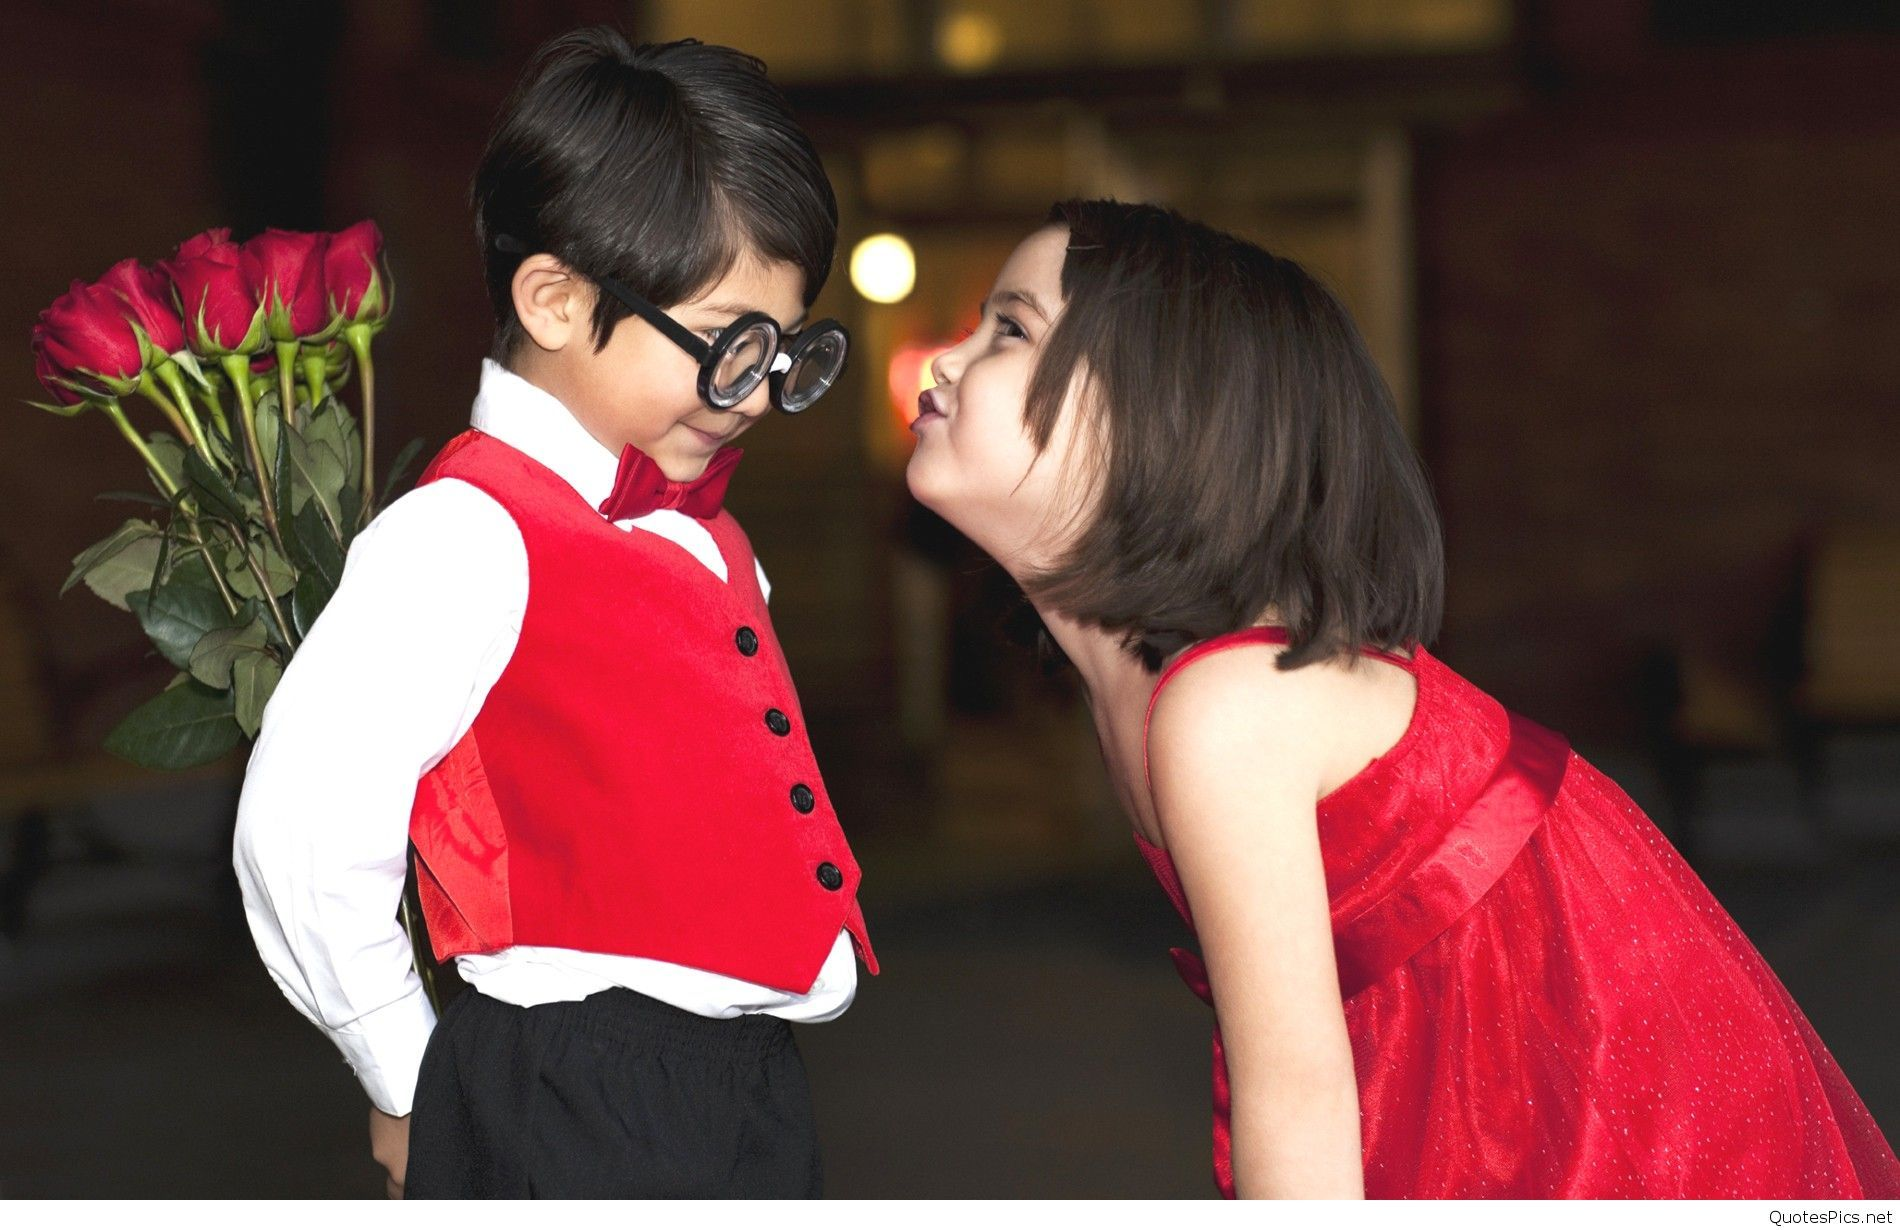 Baby Couple Wallpaper Hd Happy Valentine Day Quotes Cute Couple Wallpaper Kids In Love